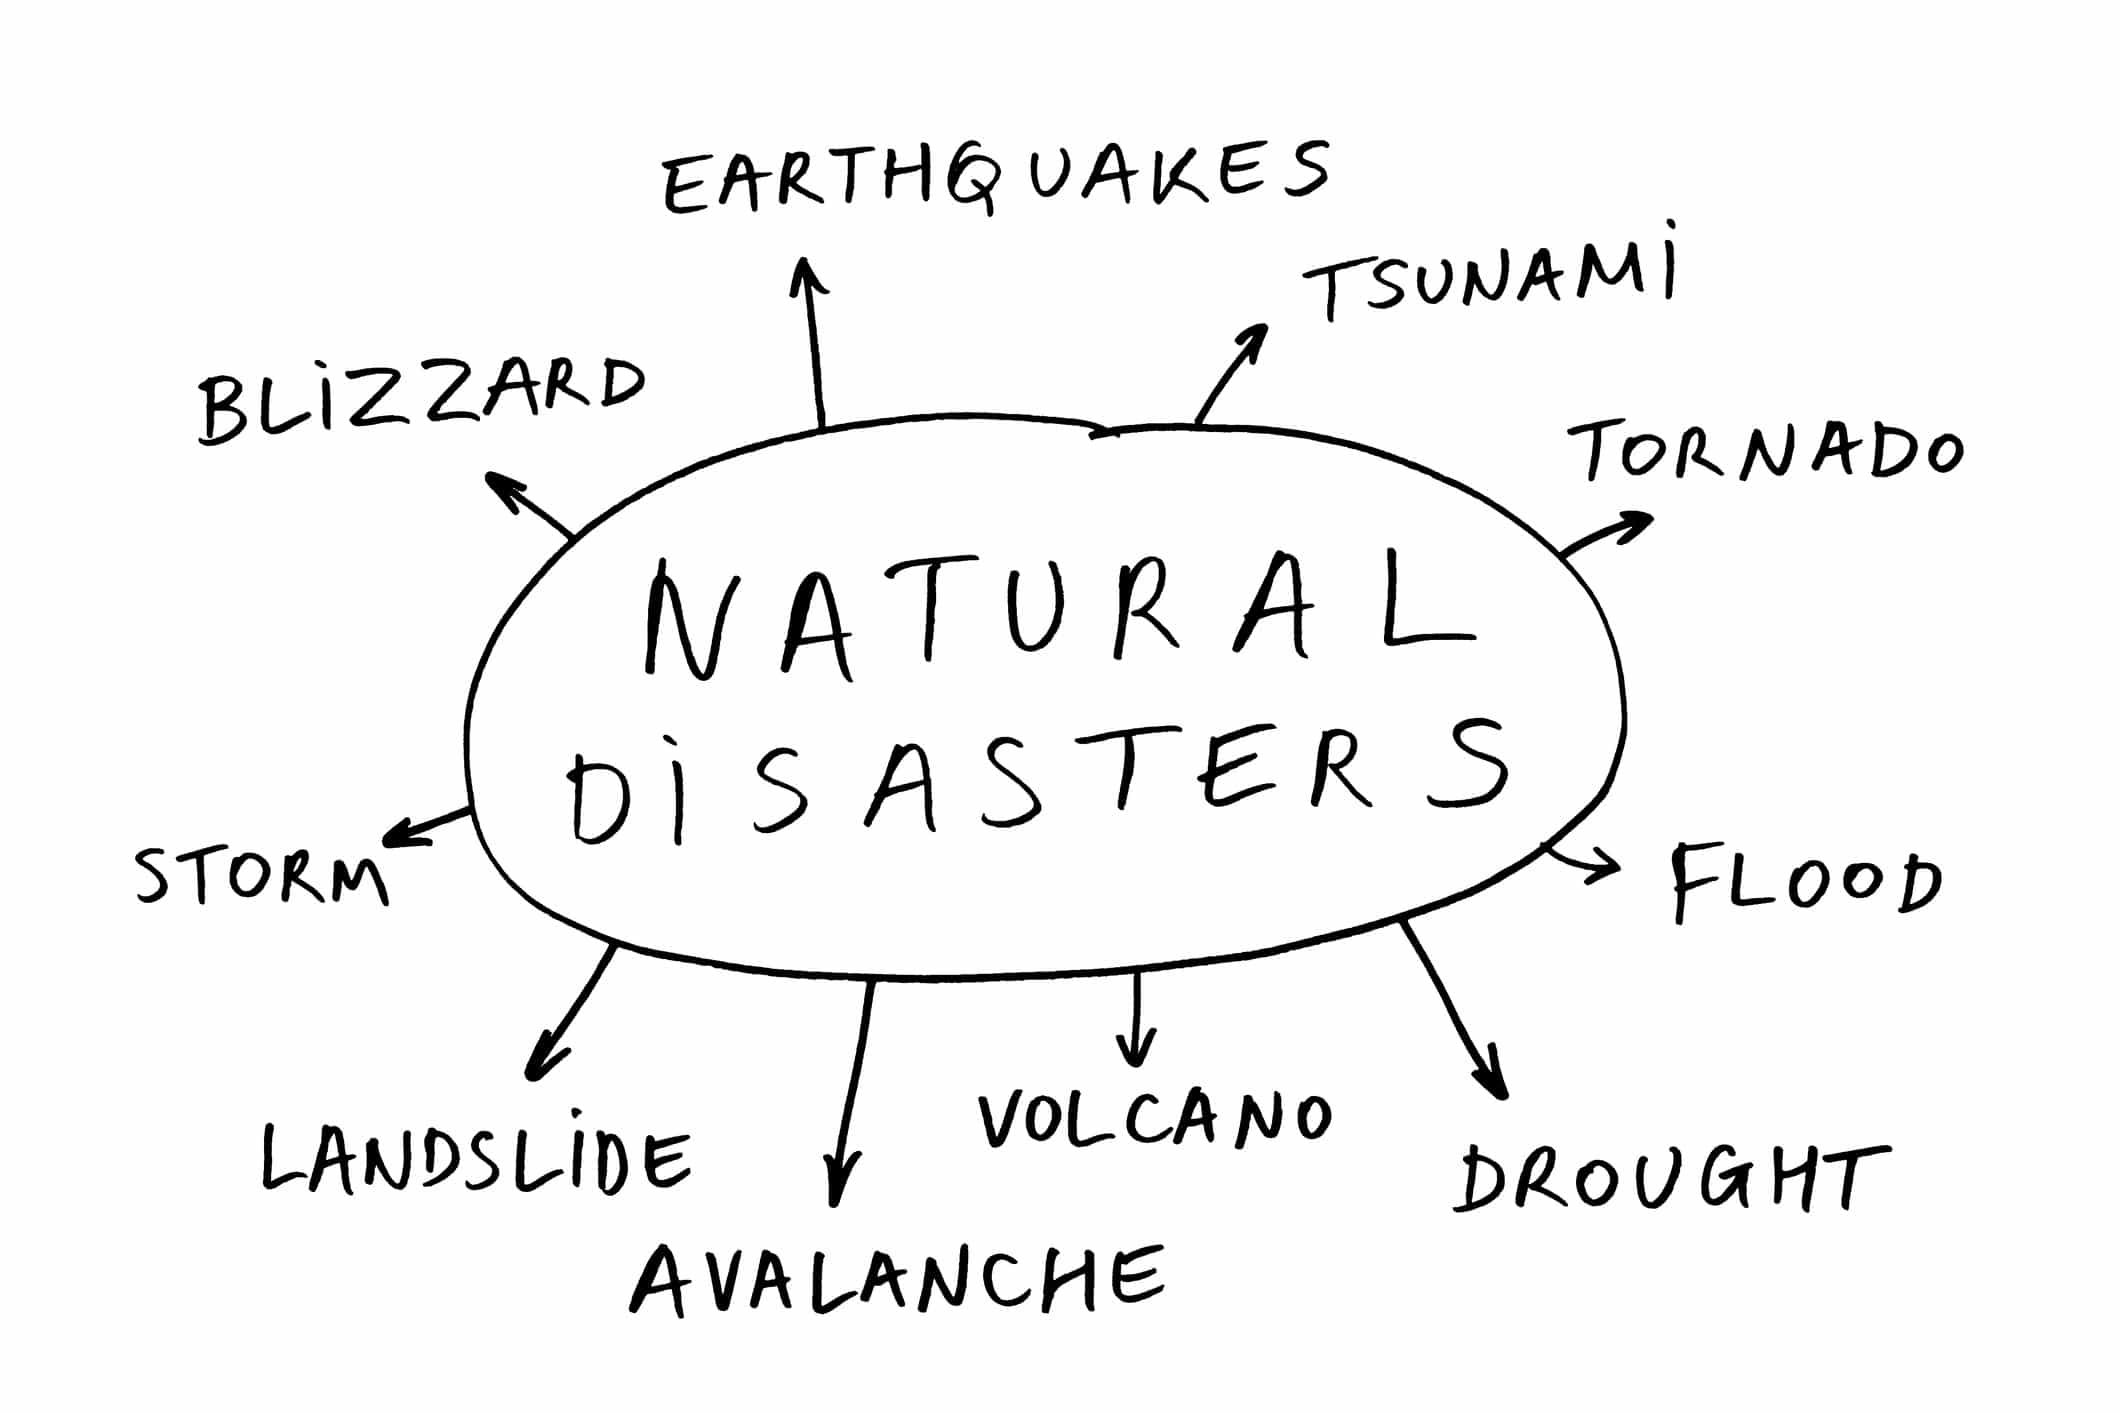 an analysis of the inner workings of tornadoes a natural hazard